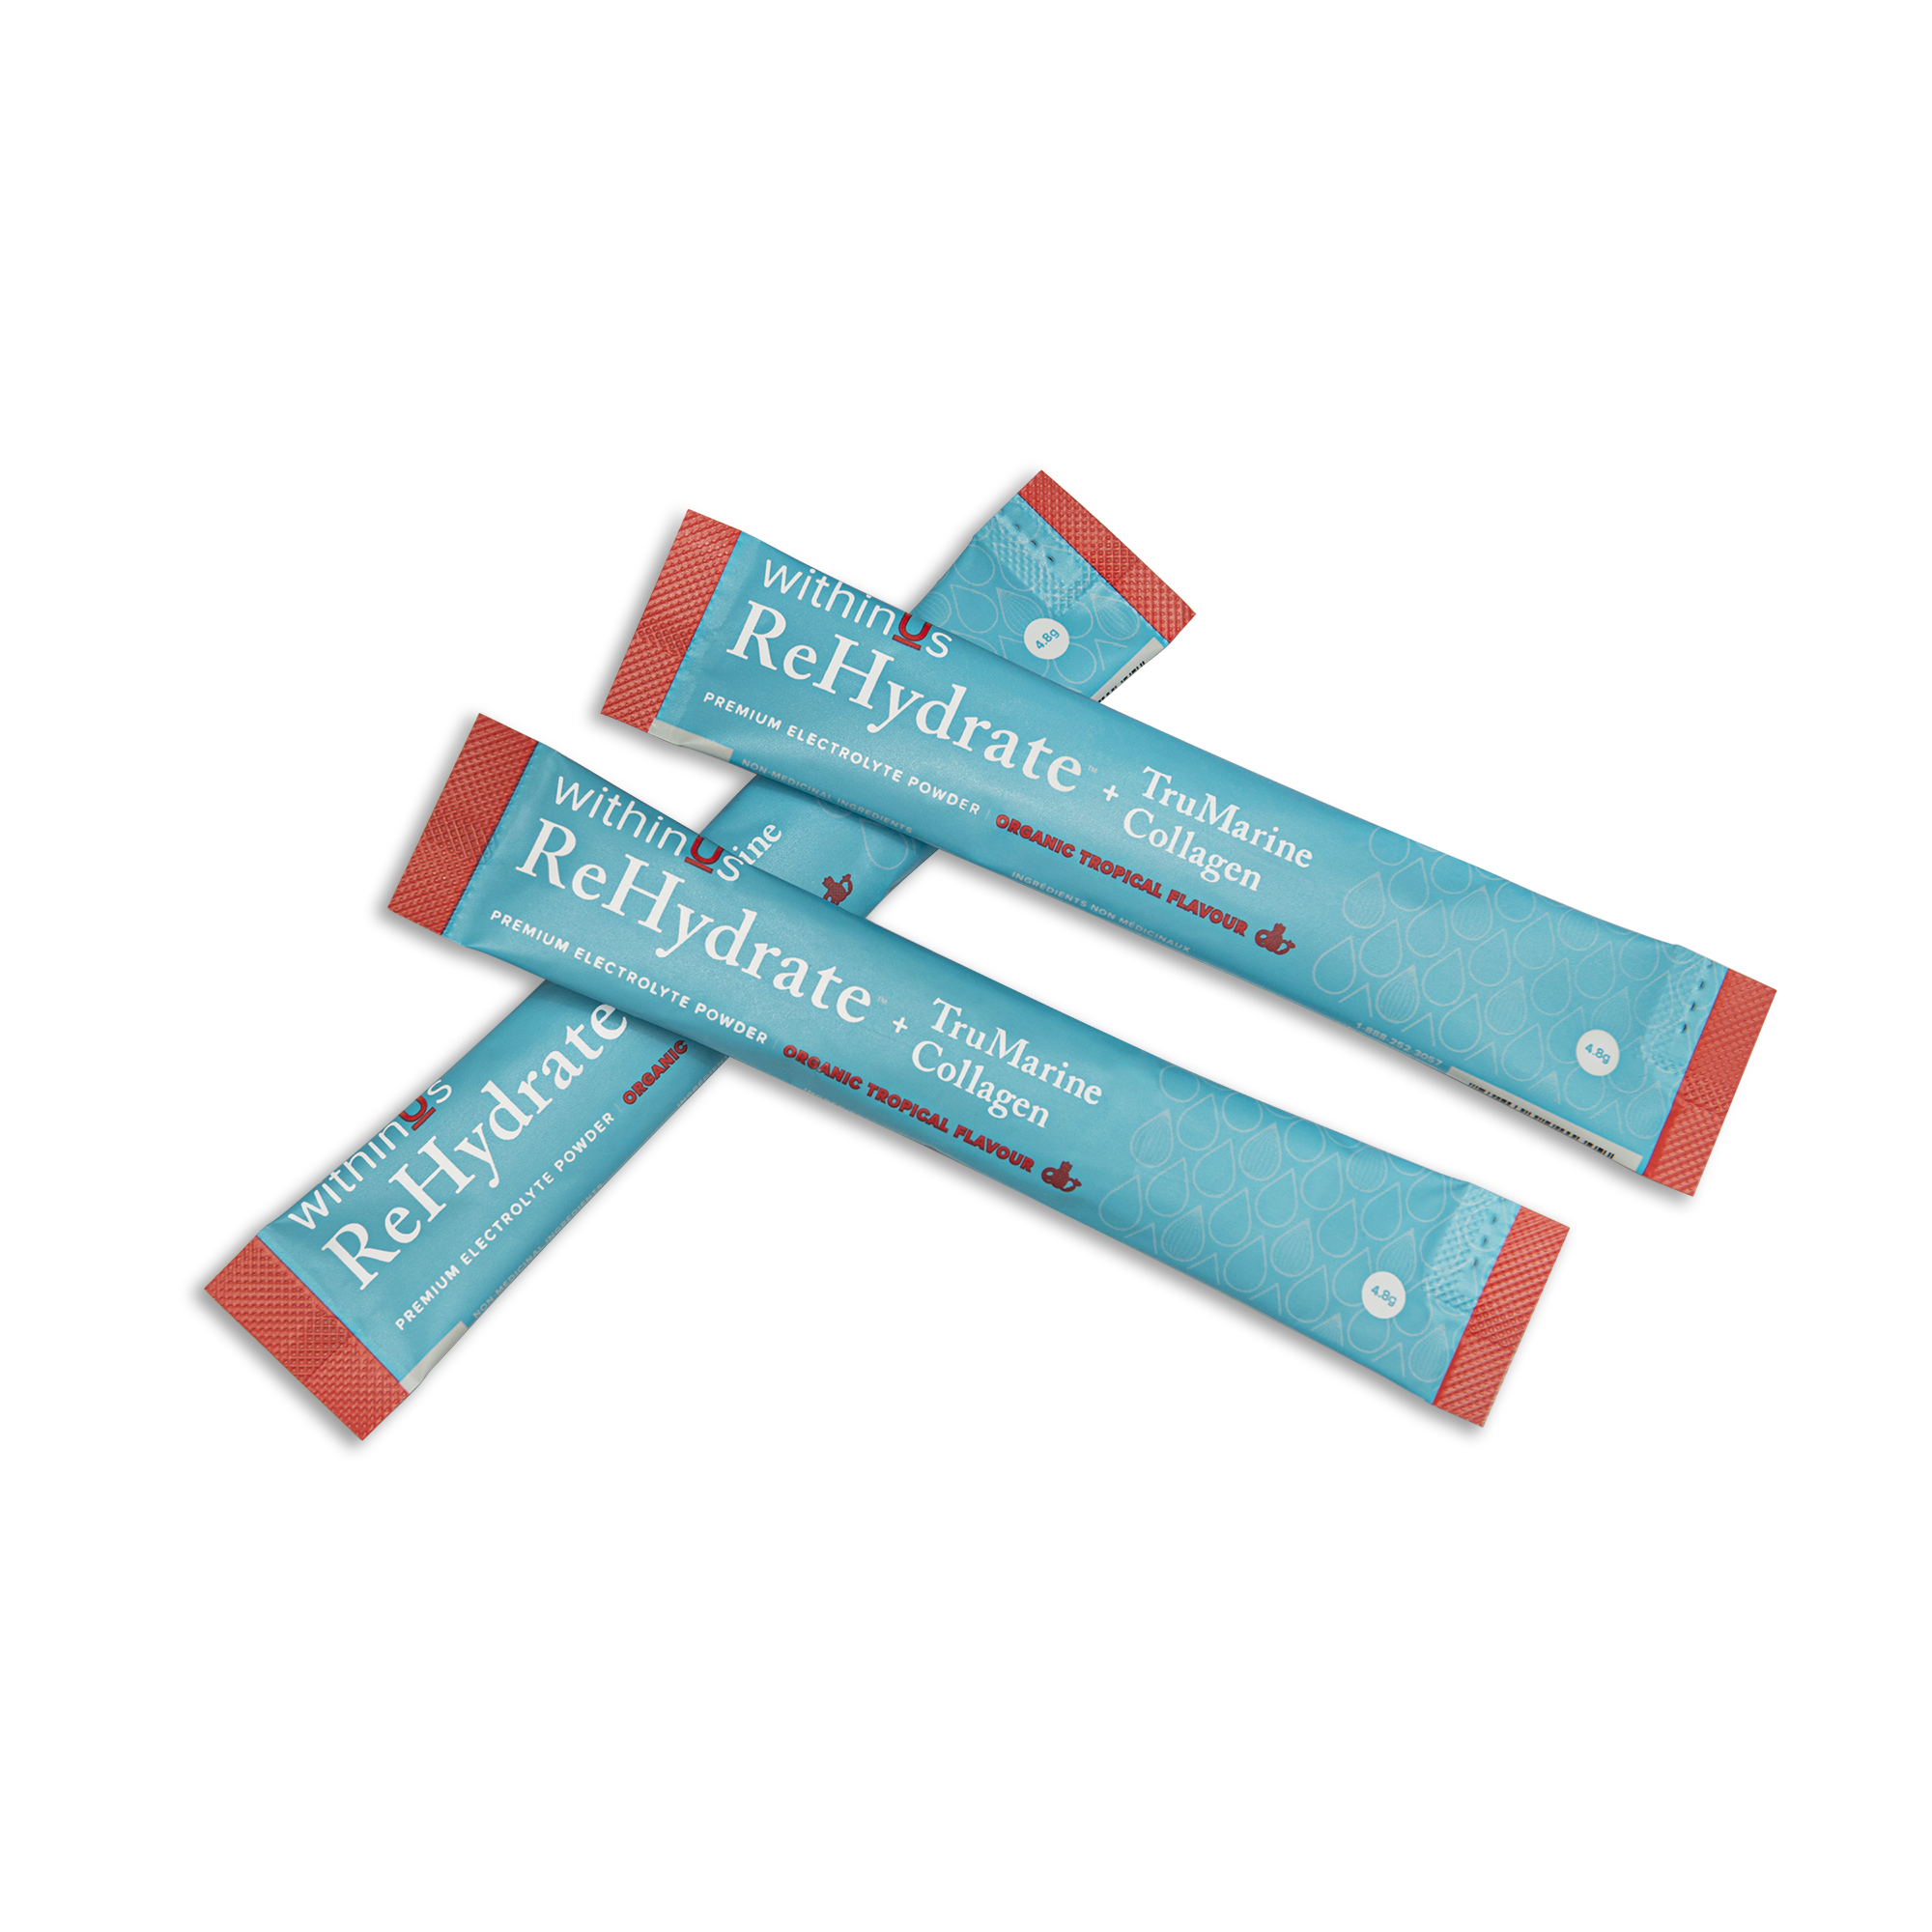 withinUs ReHydrate + TruMarine Collagen  (Refill and Replenish stick packs) - TROPICAL